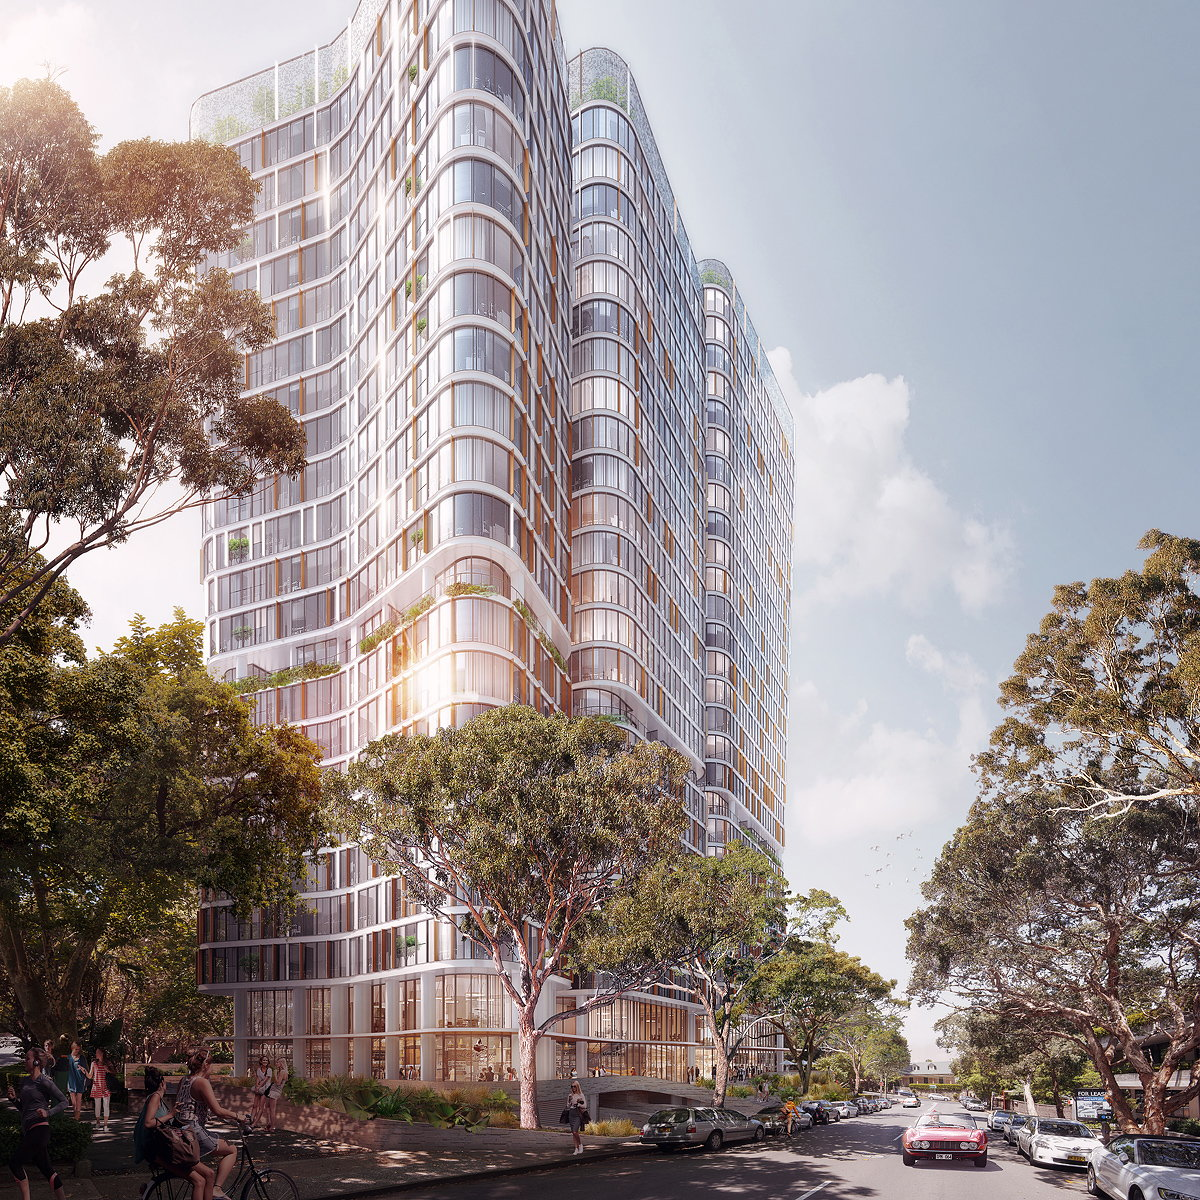 168 Walker Street - A Mixed-use Gem in the Heart of North Sydney